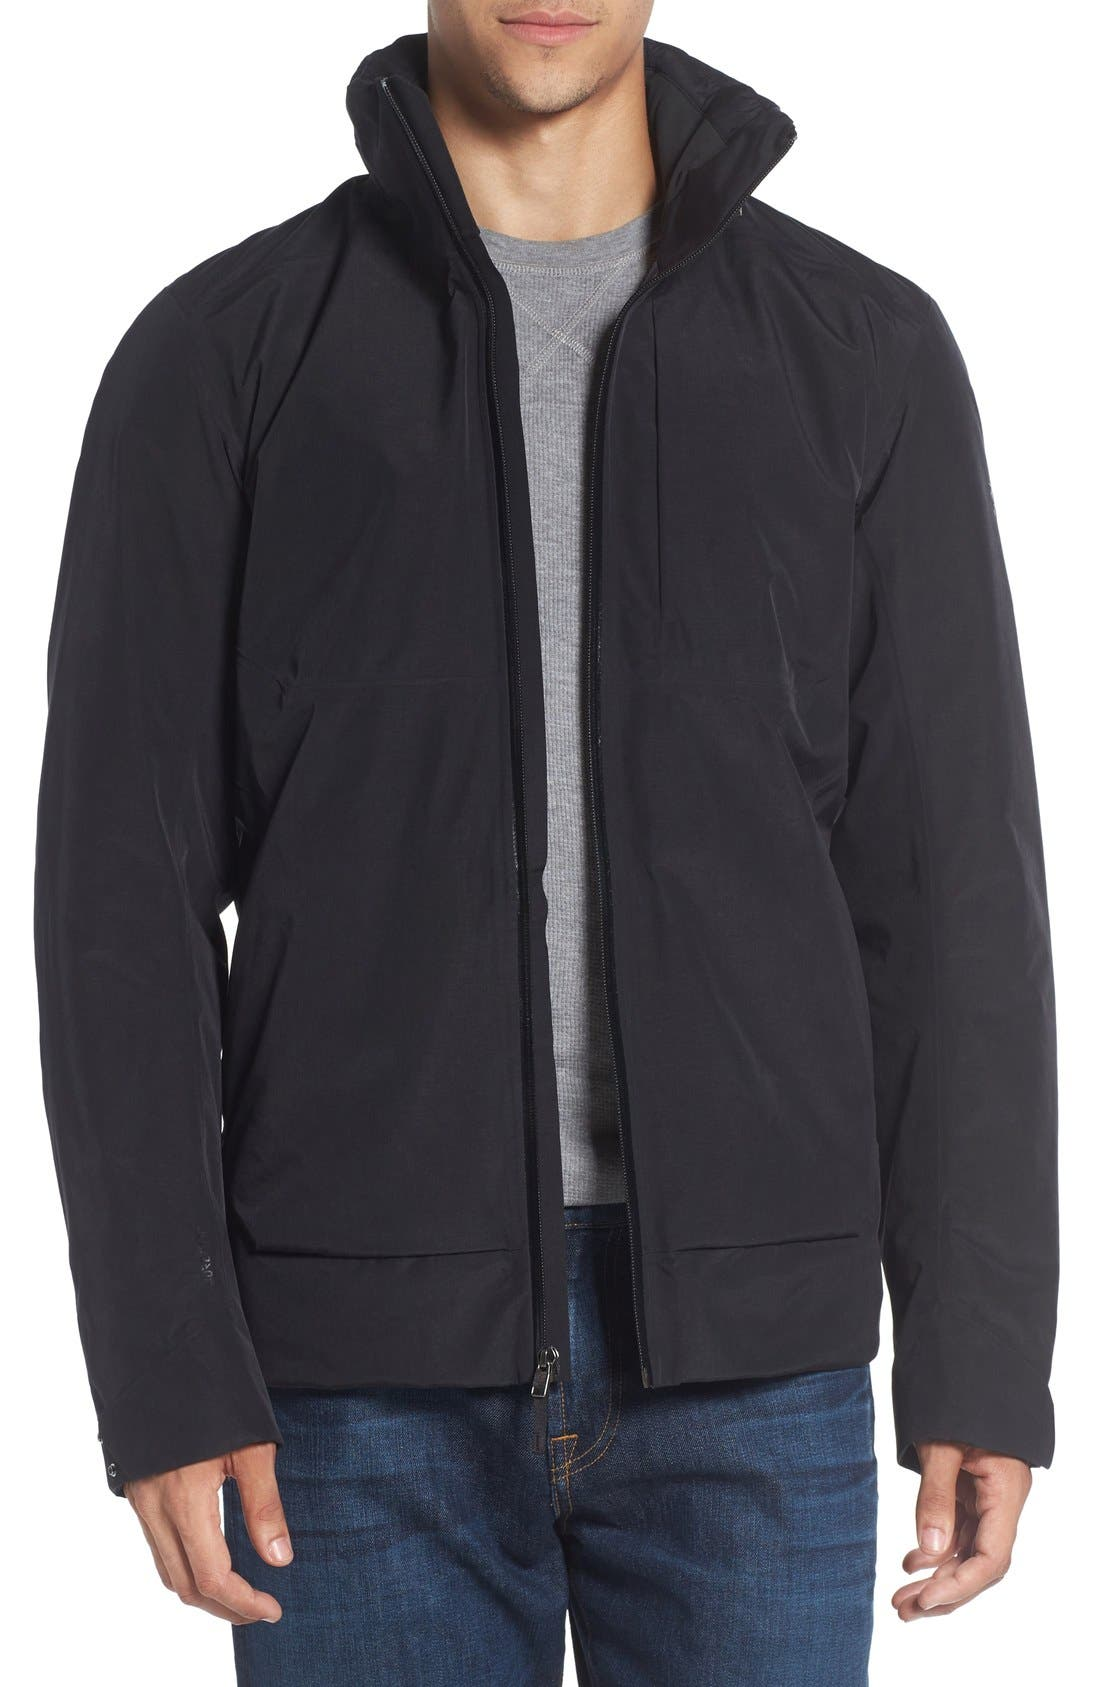 Arc'teryx 'Ames' Waterproof Shell Jacket